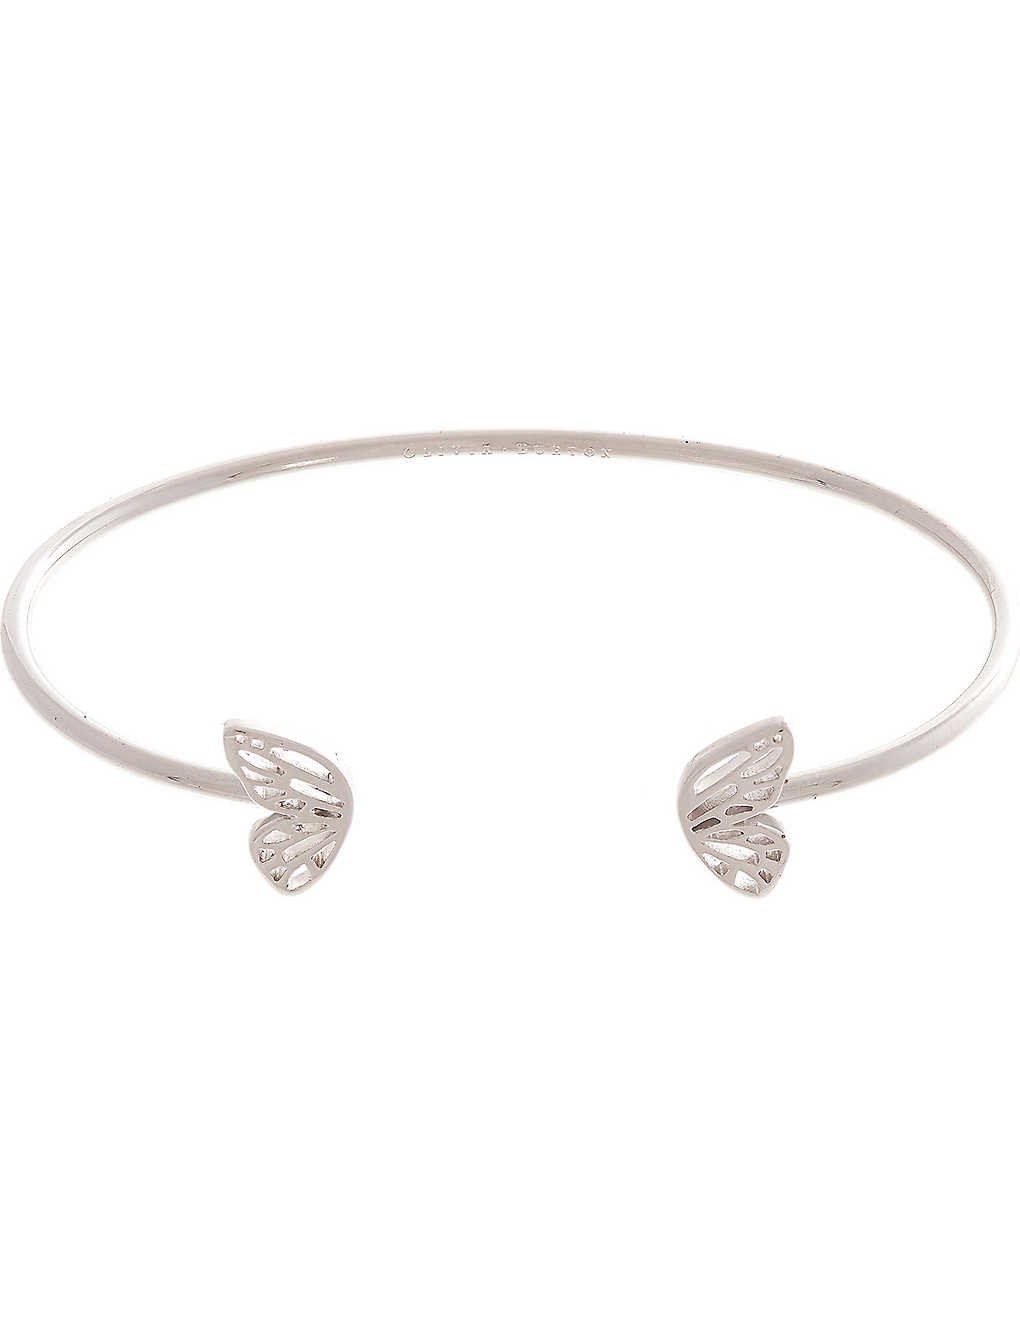 e3a02d3651144 OLIVIA BURTON - Butterfly Wing sterling silver open ended bangle ...